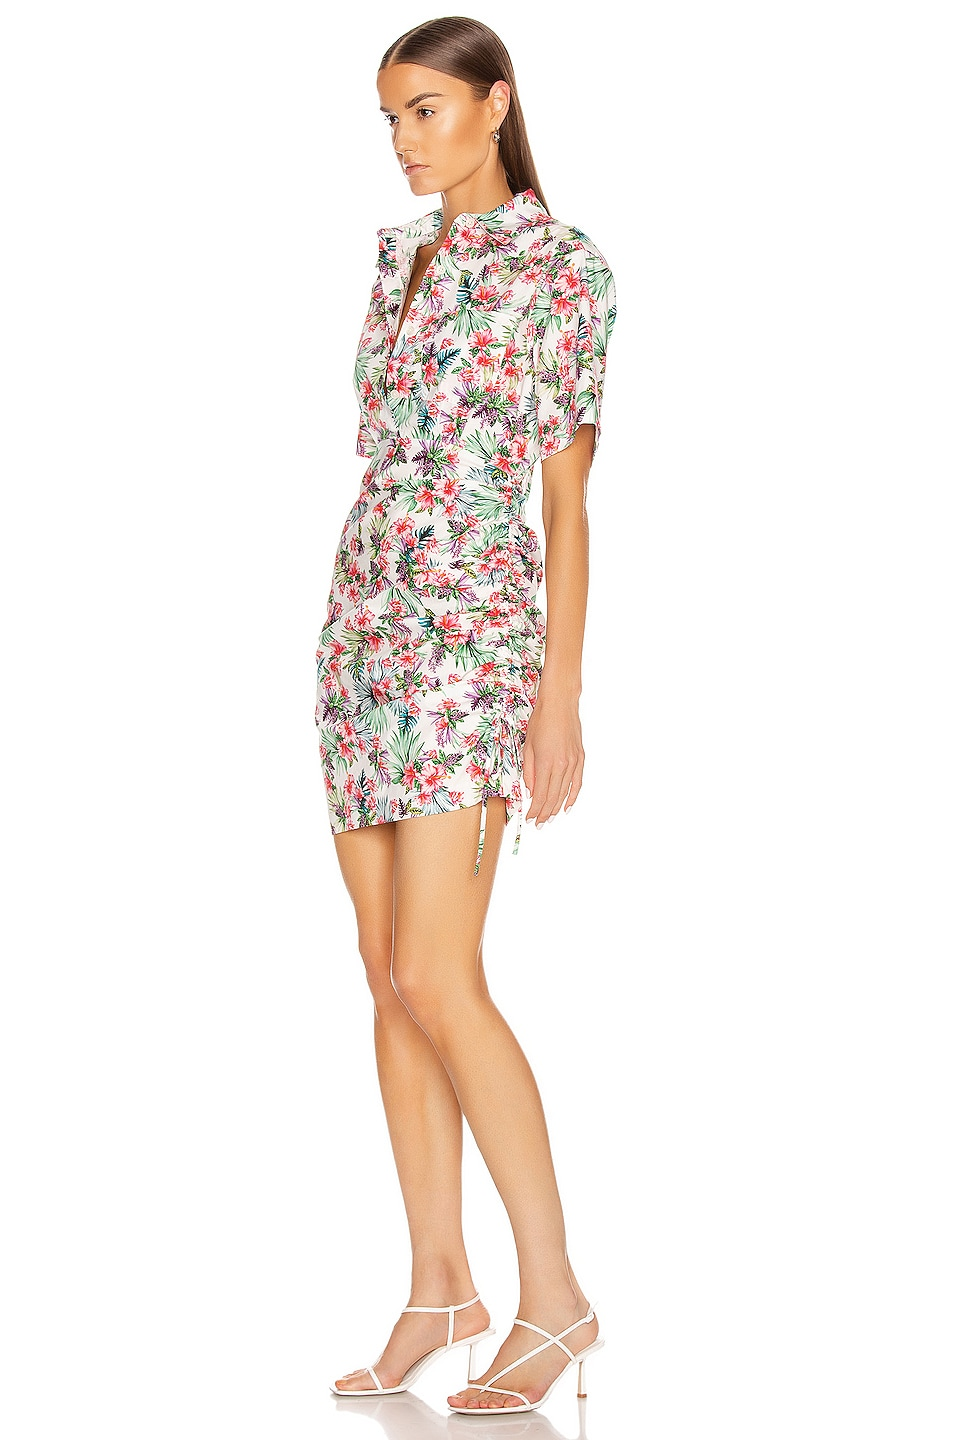 Image 4 of Les Reveries Ruched Skirt Cotton Shirt Dress in Hibiscus White